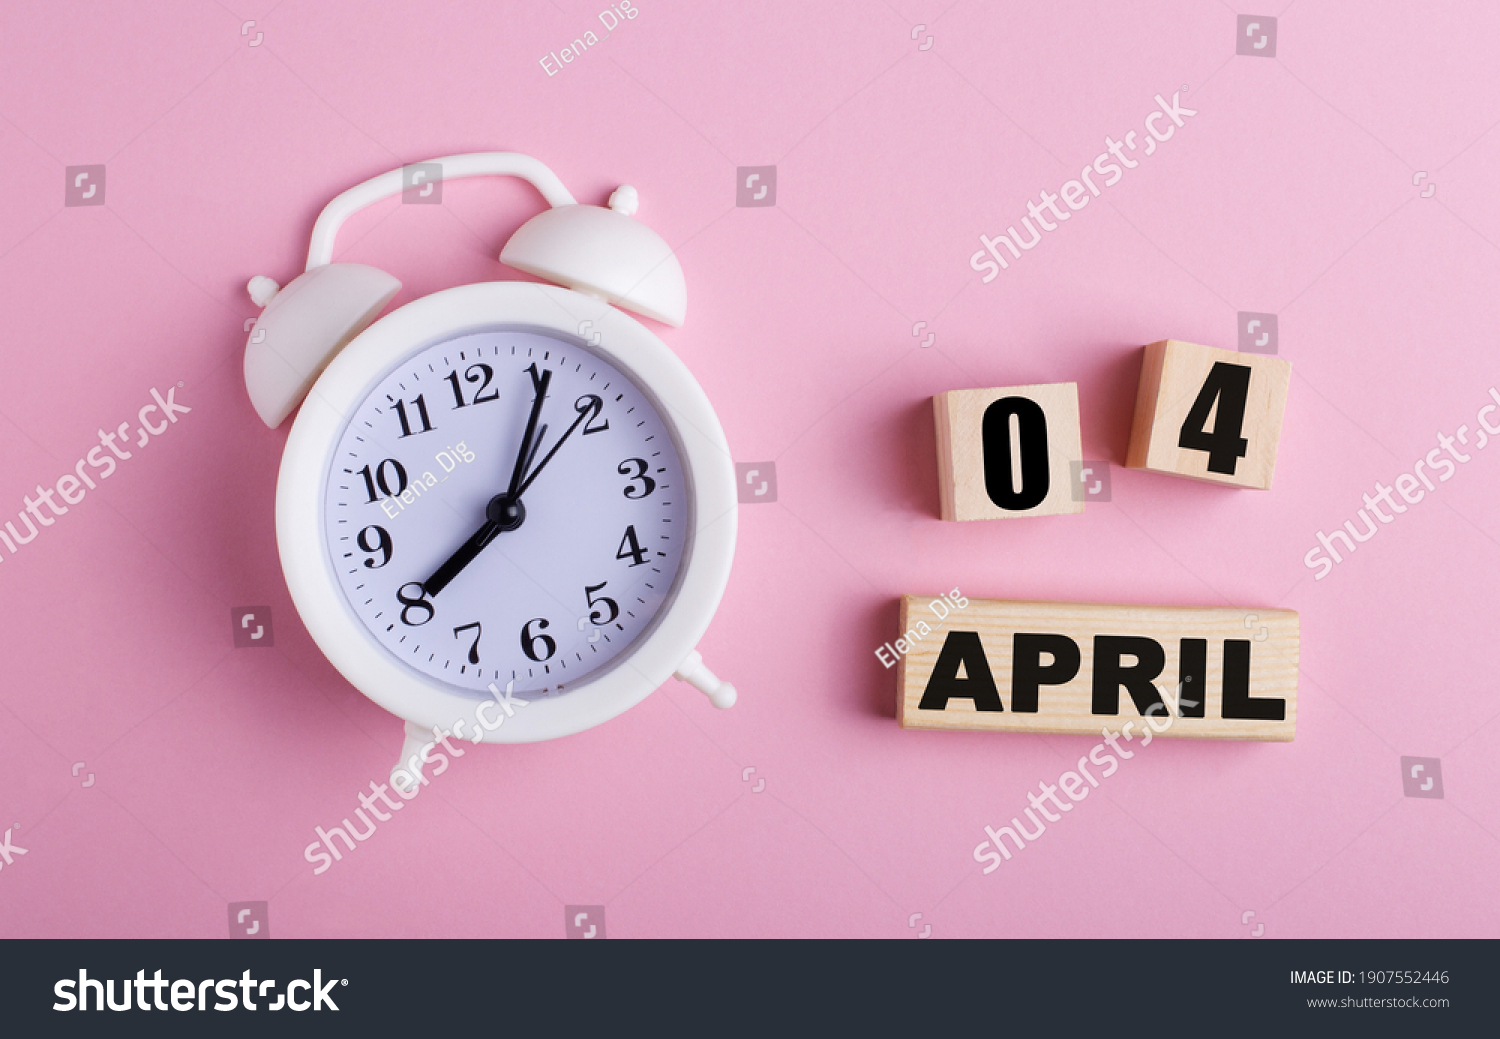 On a pink background, a white alarm clock and wooden cubes with the date of APRIL 04 #1907552446